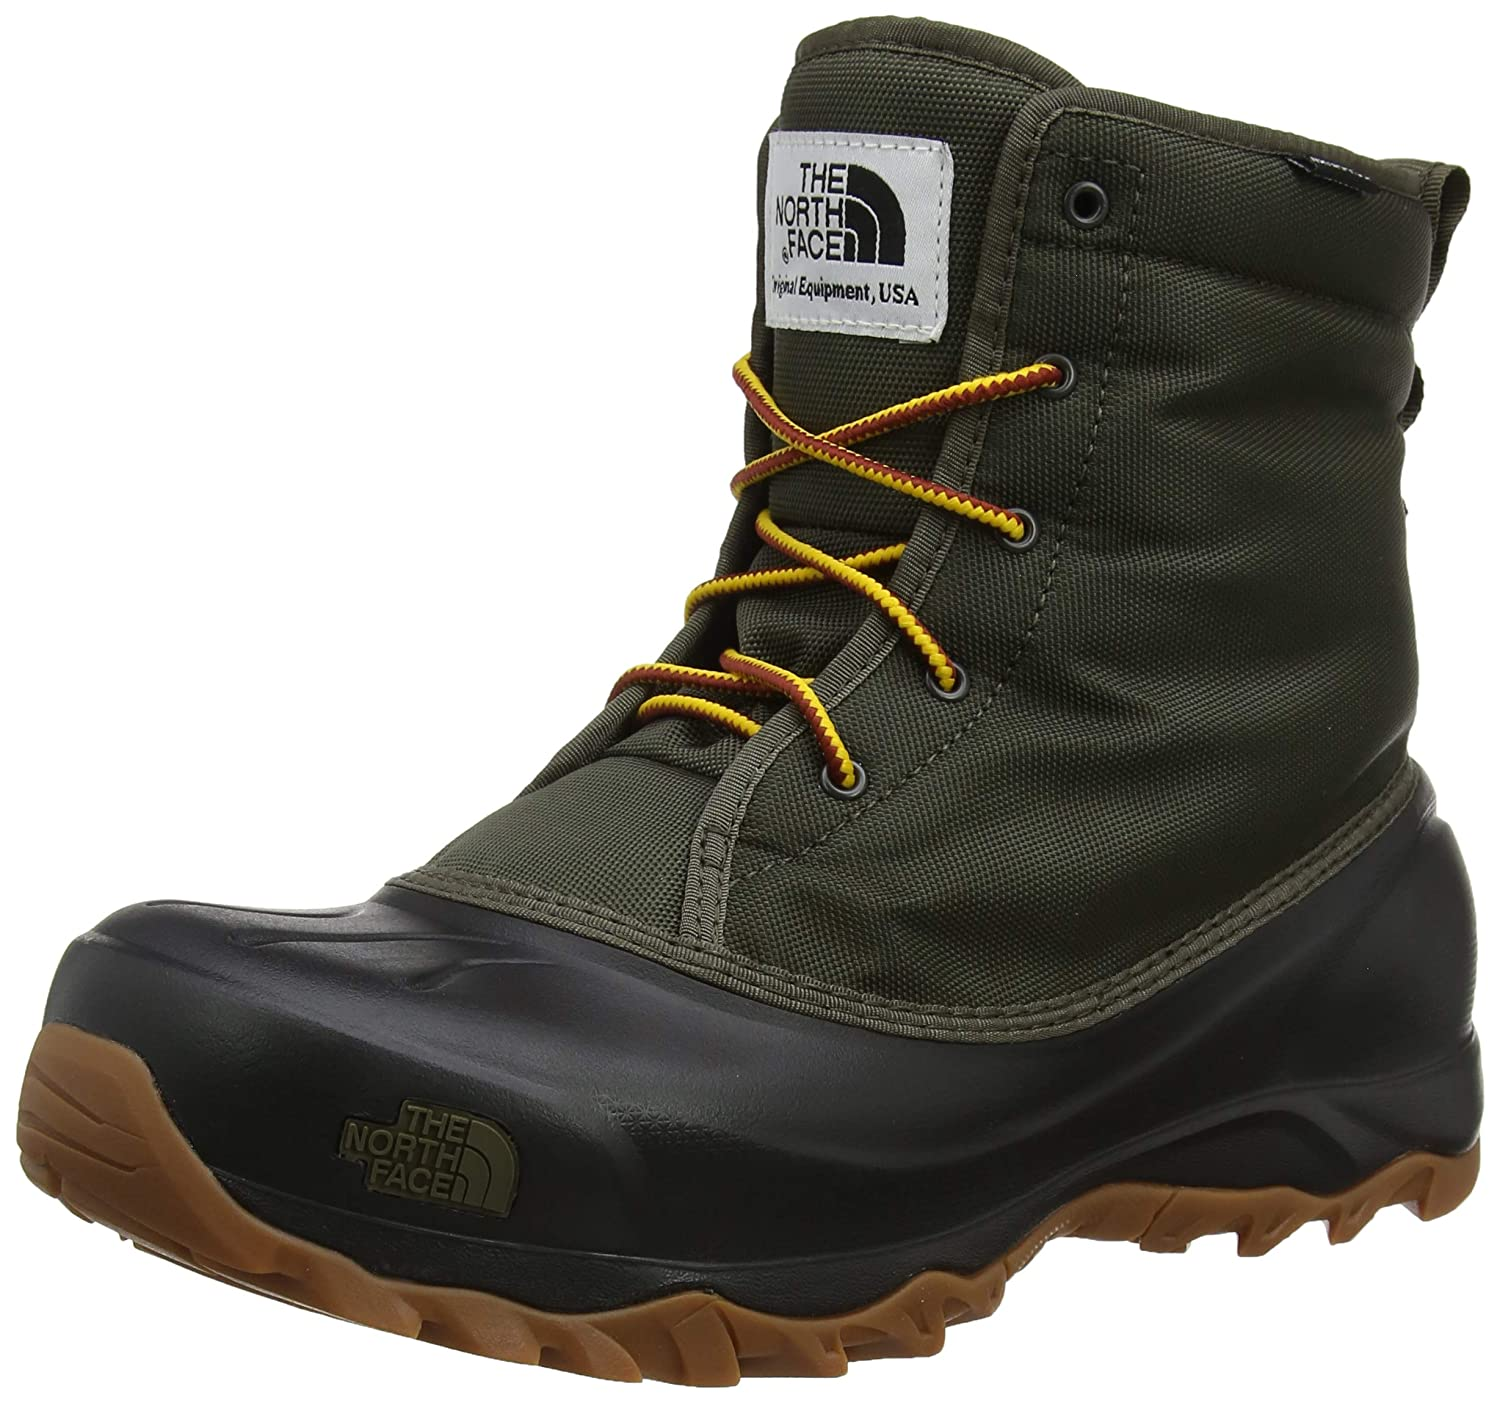 The North Face Men's Tsumoru Boot, Botas de Nieve para Hombre